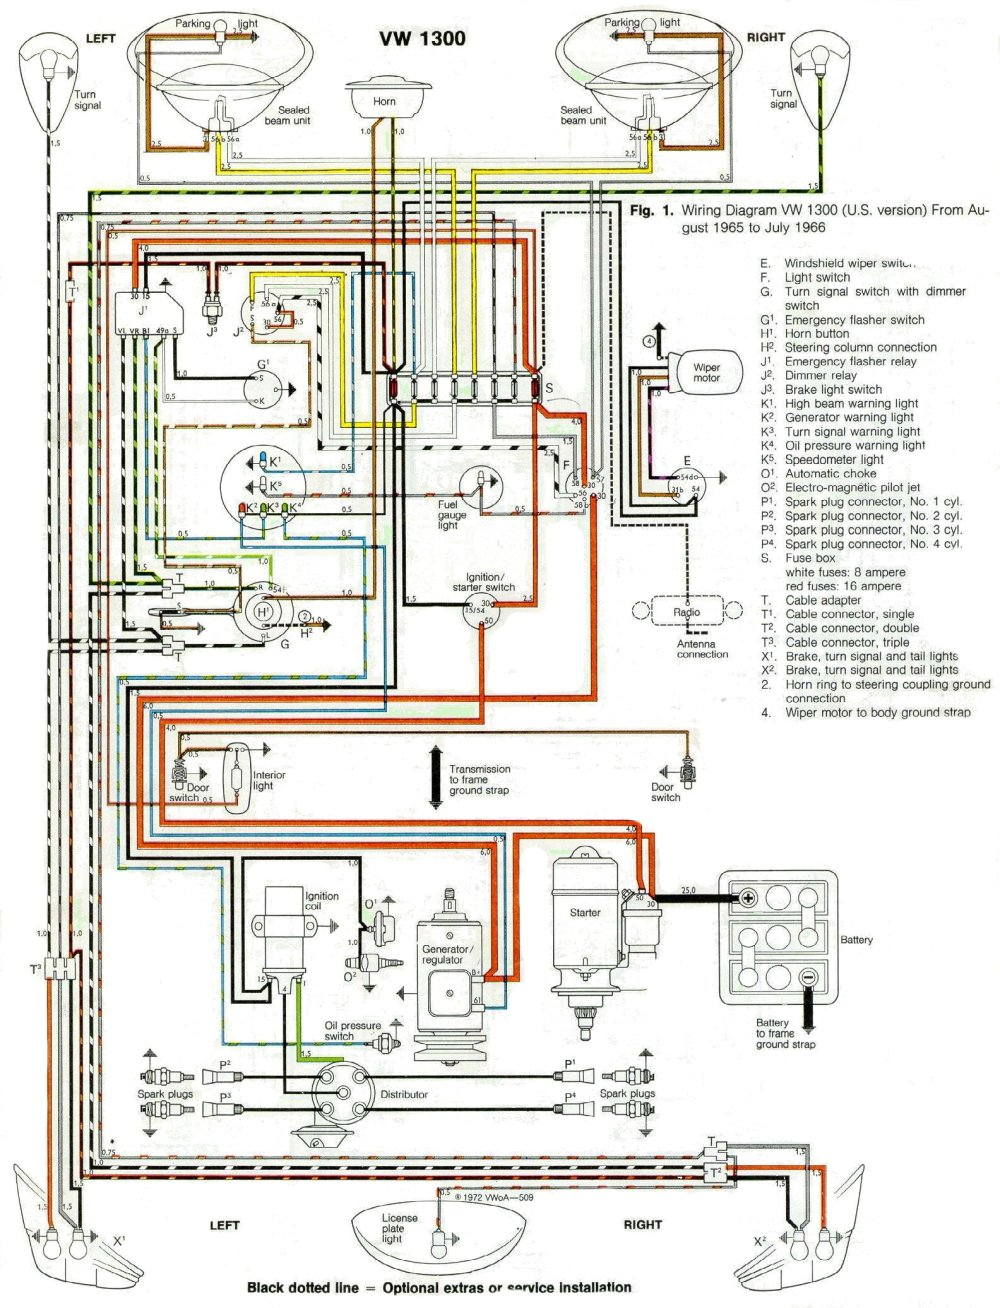 medium resolution of 1960 vw bug wiring wiring diagrams data 1974 vw engine wiring 1963 vw bug wiring diagram